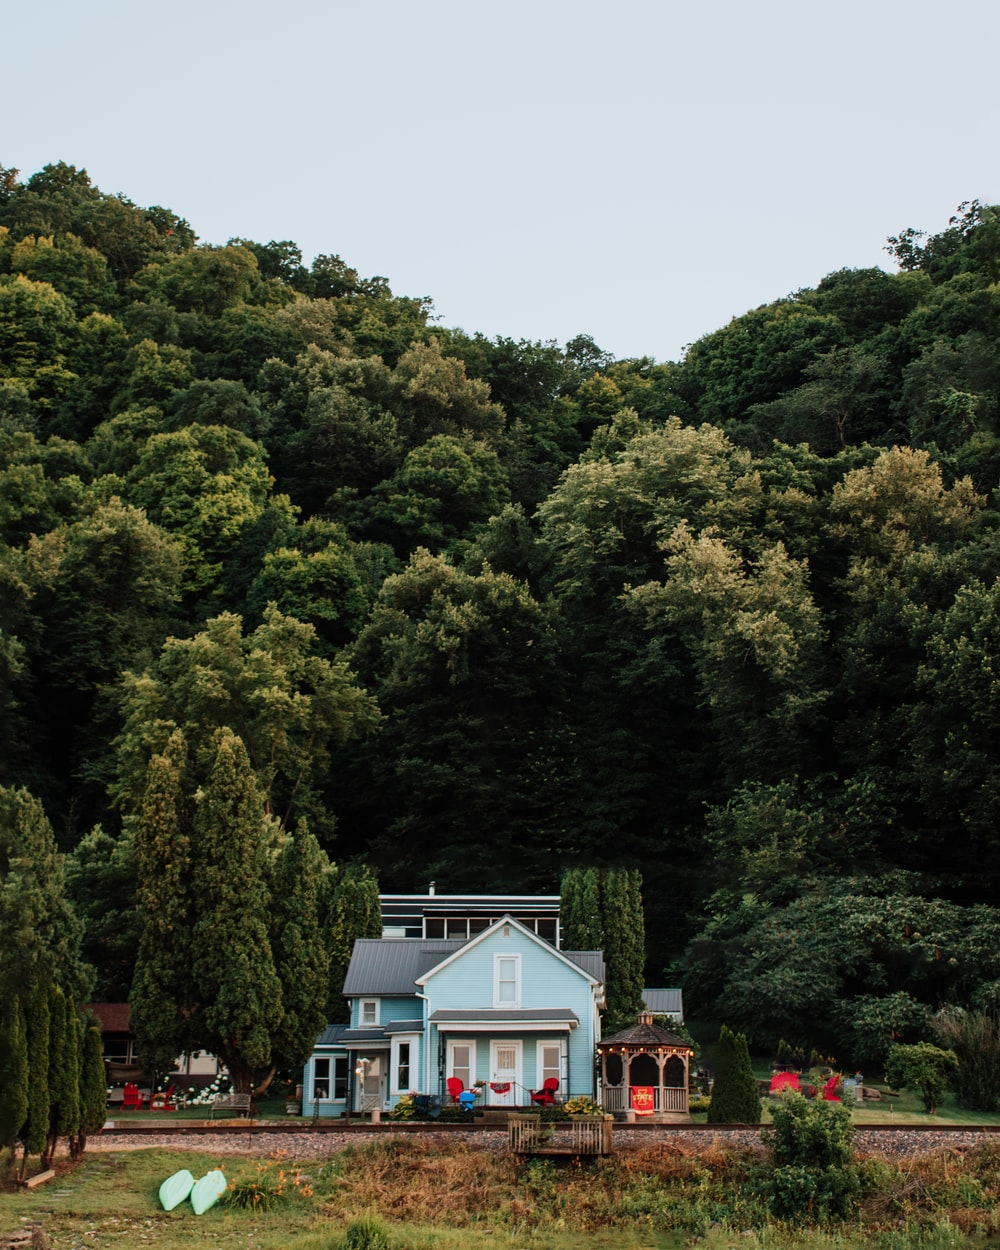 green trees near white and blue house during daytime